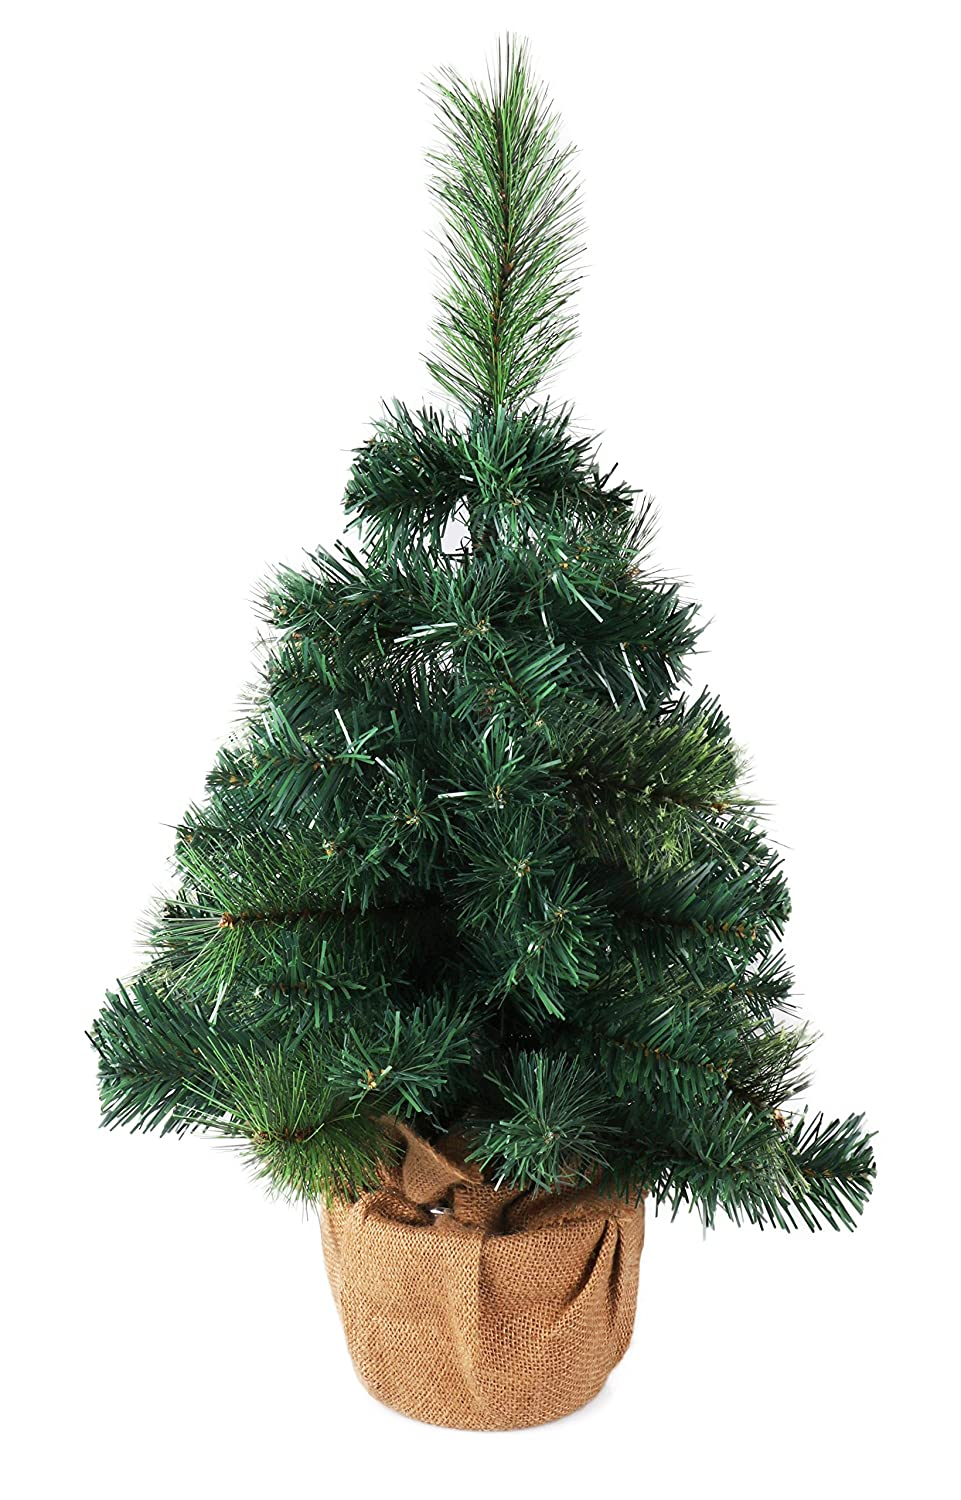 Small Artificial Christmas Tree with Burlap Base - 24